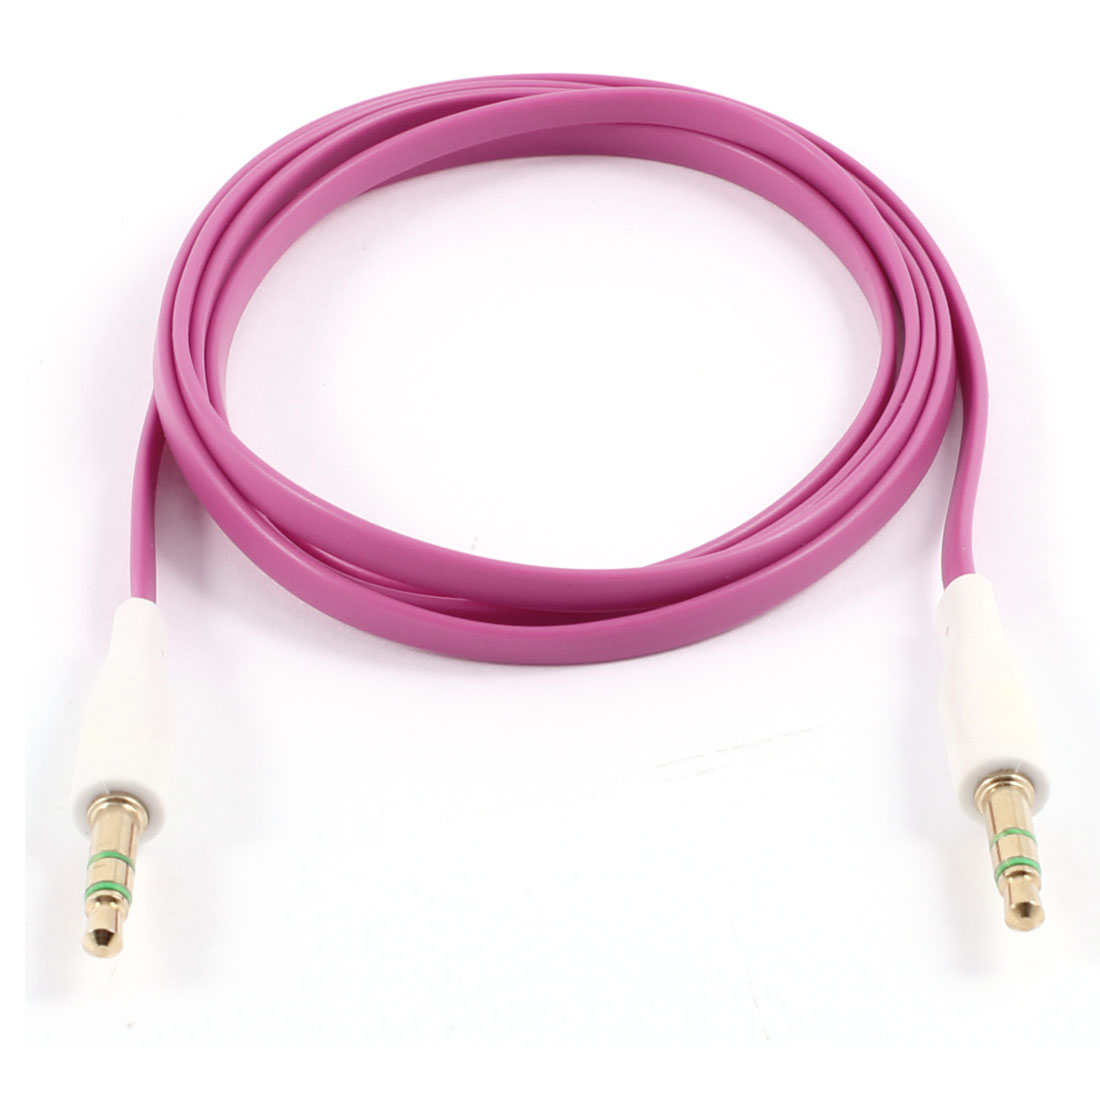 PC MP3 Adapter M/M 3.5mm to 3.5mm Flat Audio Extension Cable 3.4ft Fuchsia